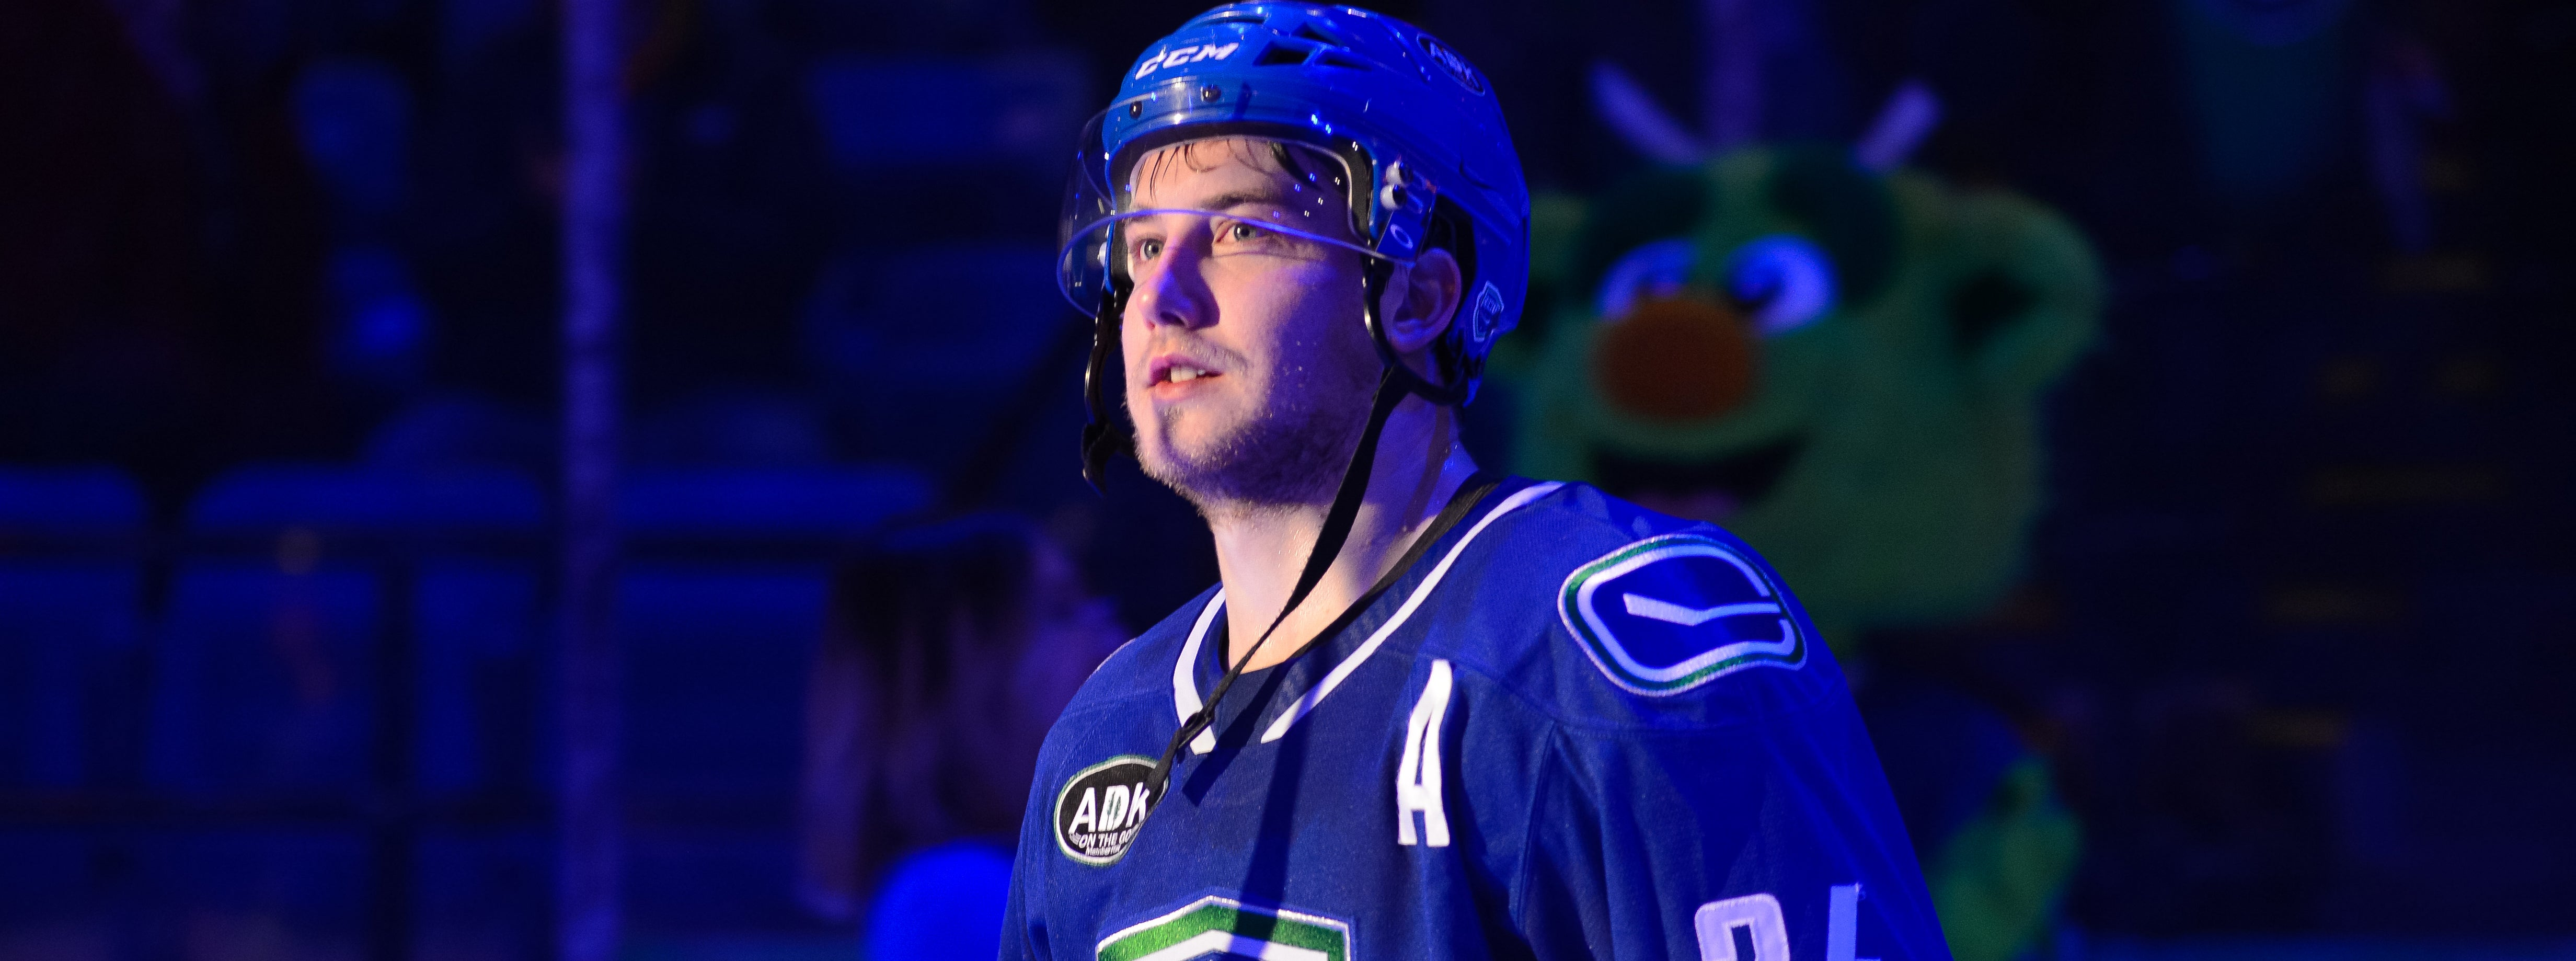 CANUCKS SIGN BOUCHER, RAFFERTY, AND TEVES